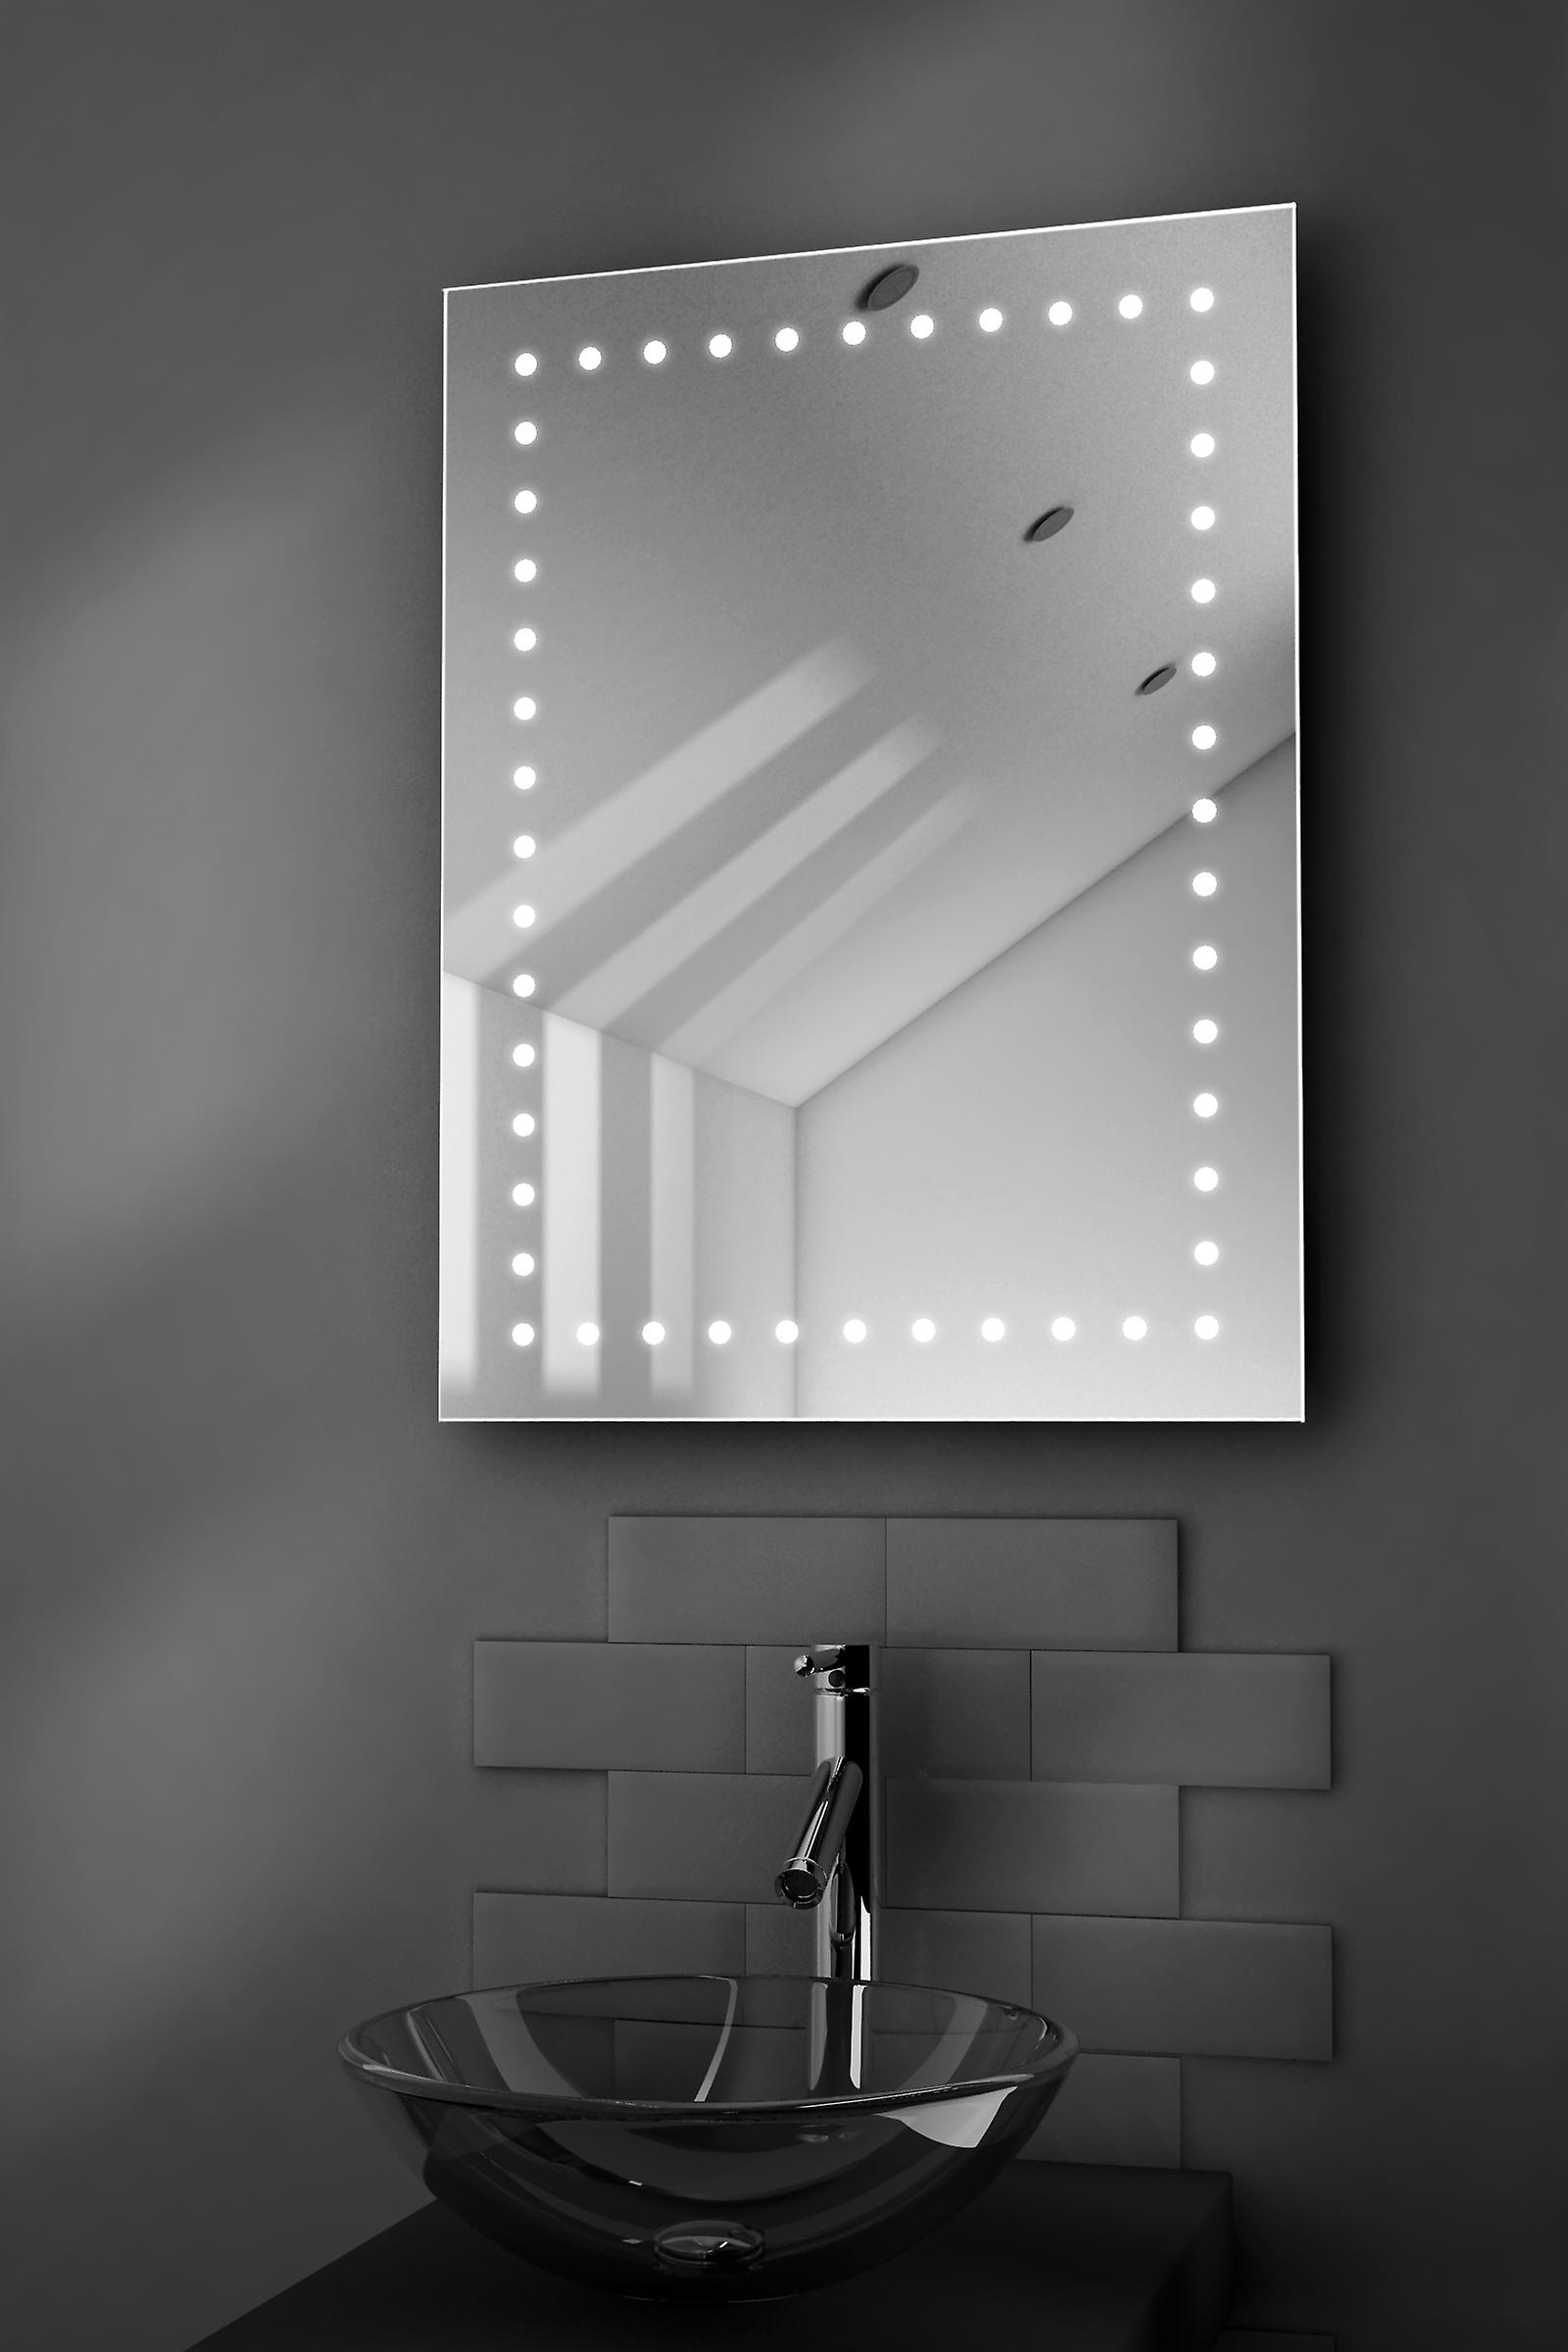 Demister Shaver LED Illuminated Bathroom Mirror H800 x W600 x D45